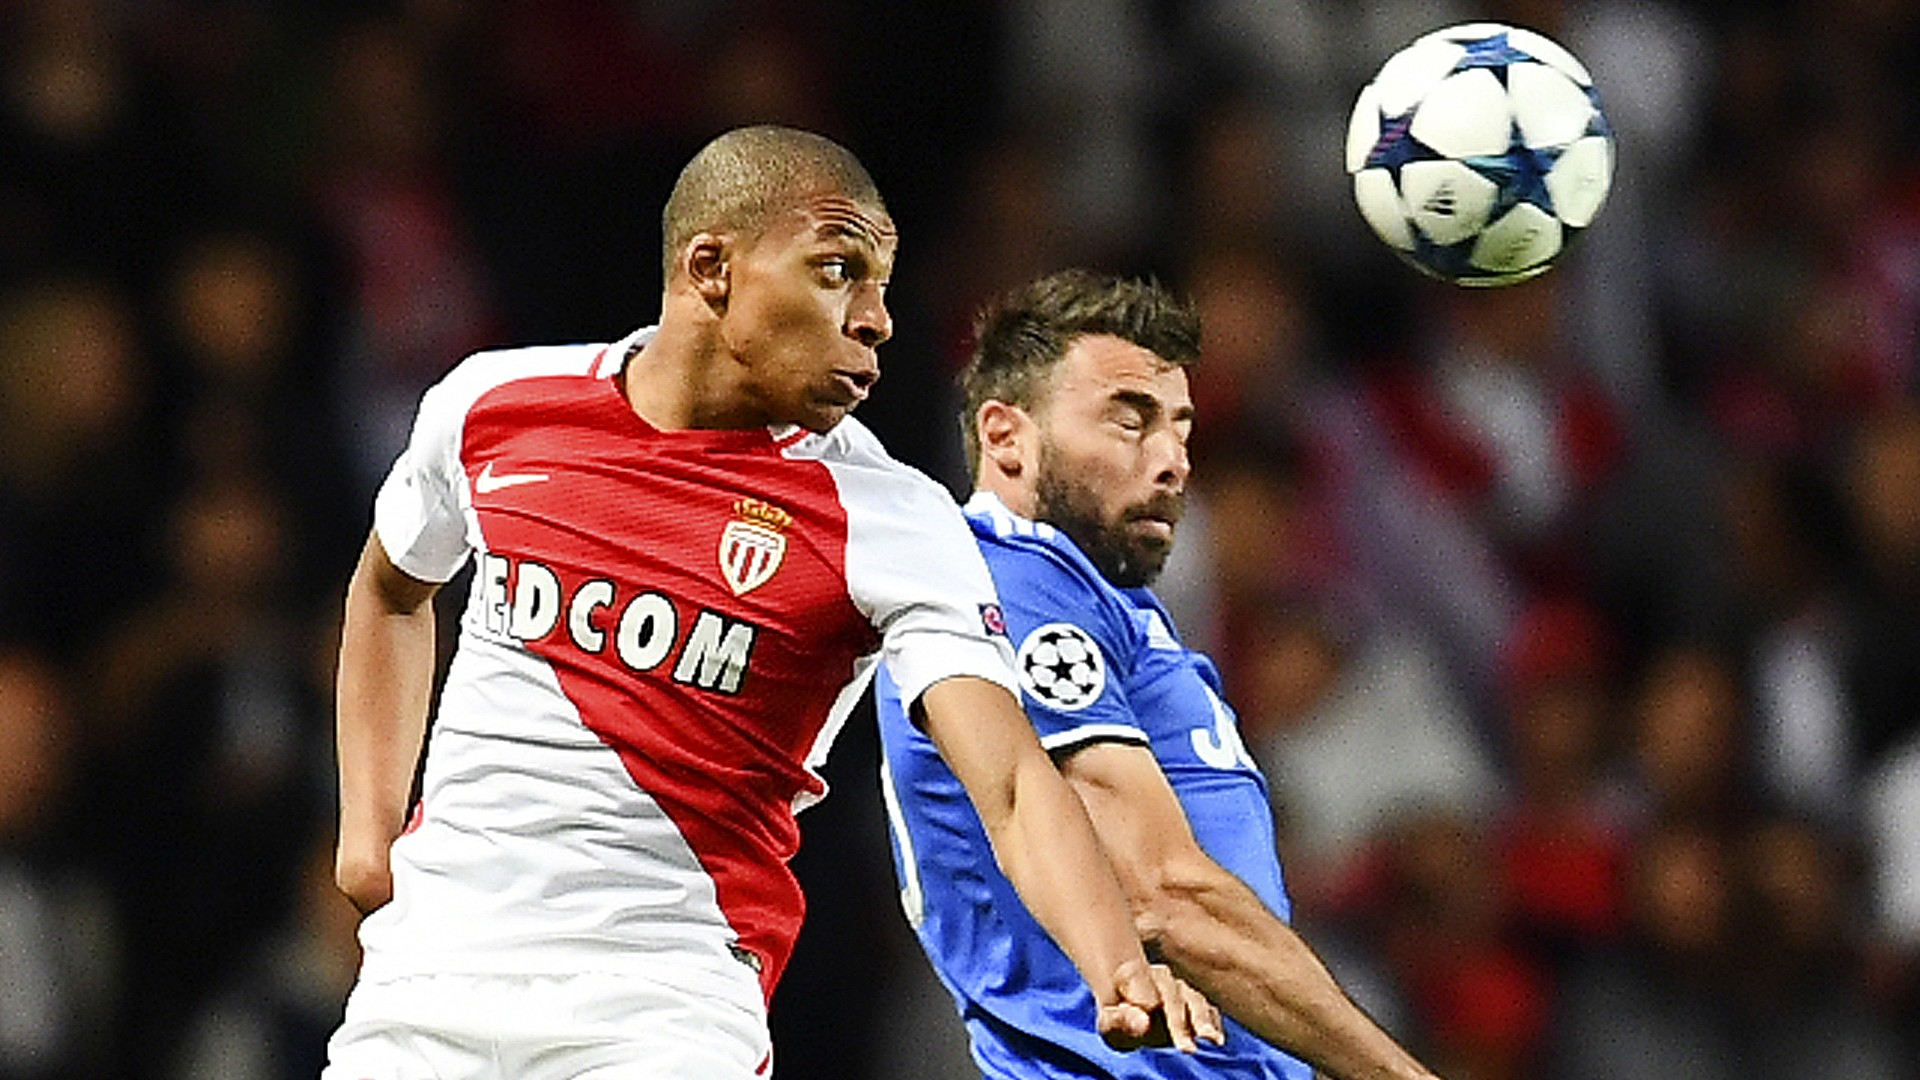 'What are we waiting for?' - Barzagli told Juventus to sign Mbappe in 2017